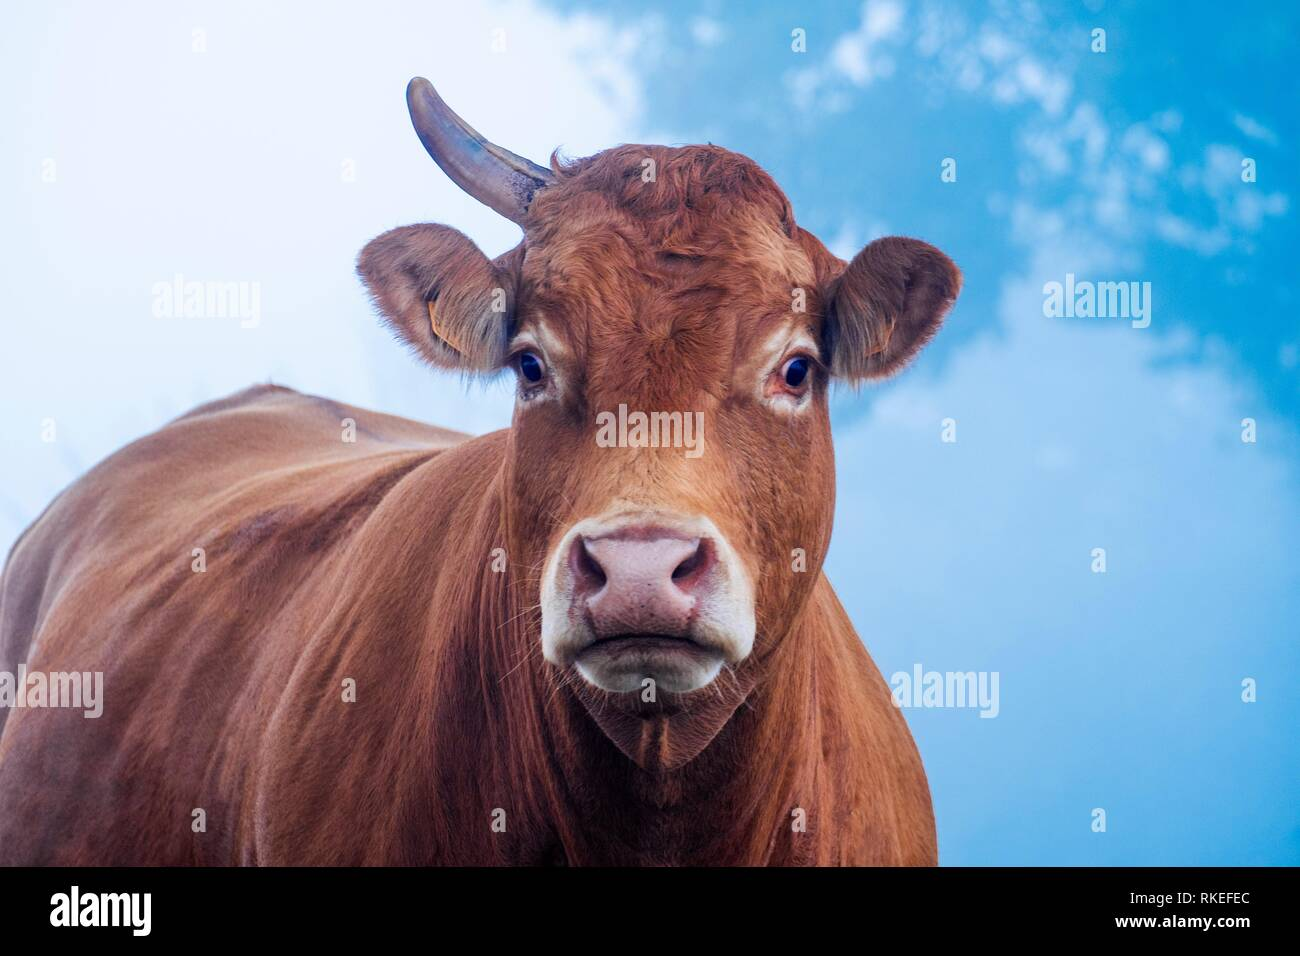 France, Auvergne, Cantal, cow MISSING A HORN, in aurumn, near Marcoles. Stock Photo